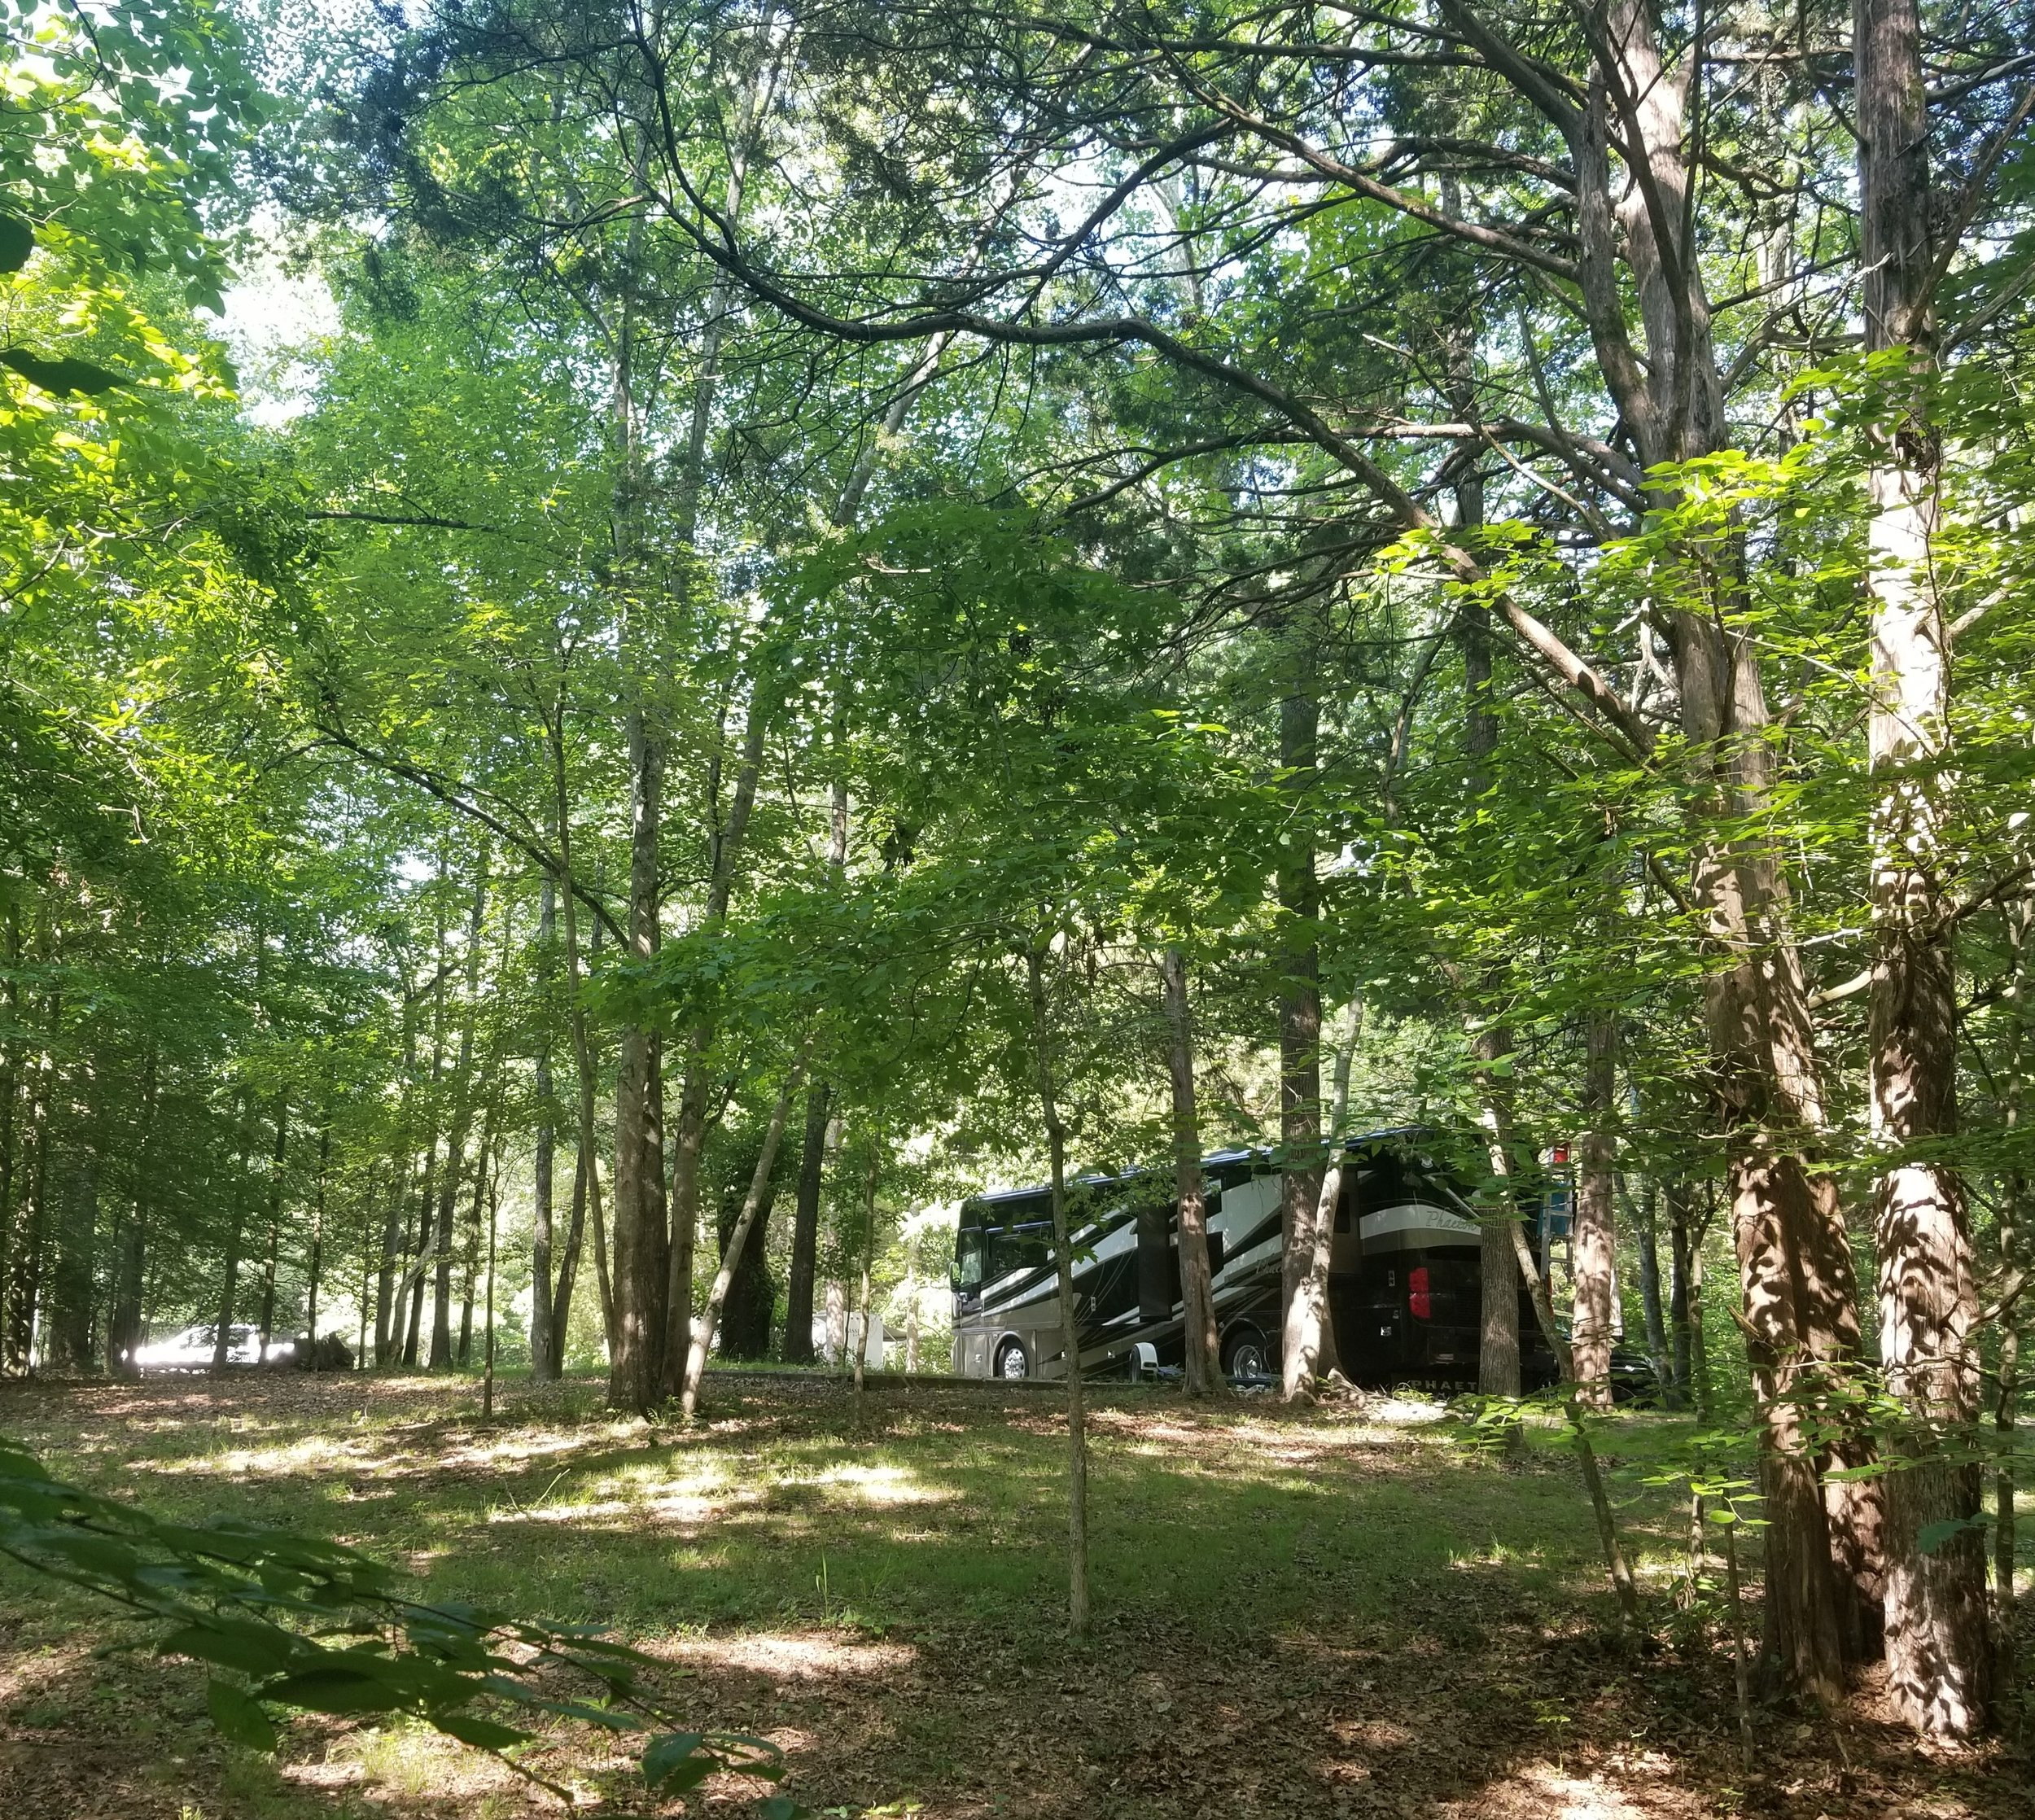 View of our motorhome from one of the hiking trails